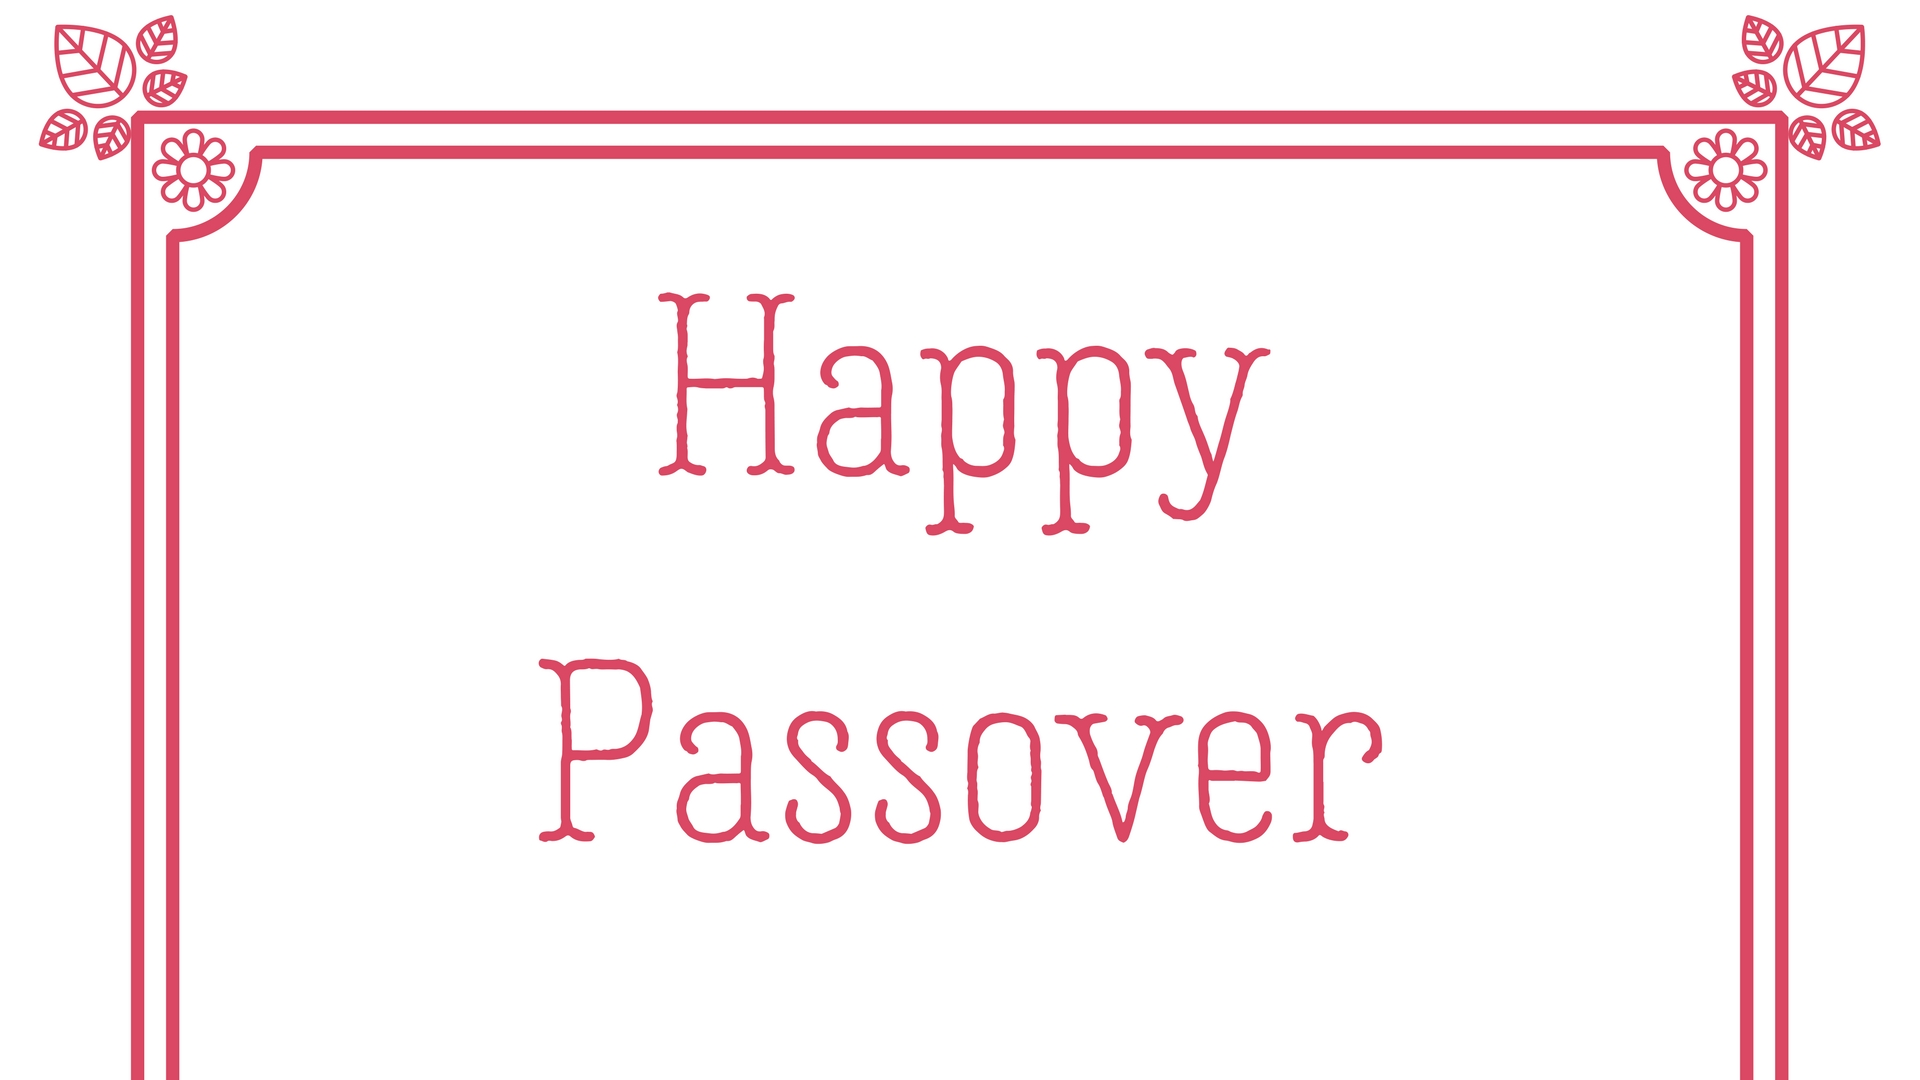 Happy Passover Rectangle Frame Greeting Card Postcard 30